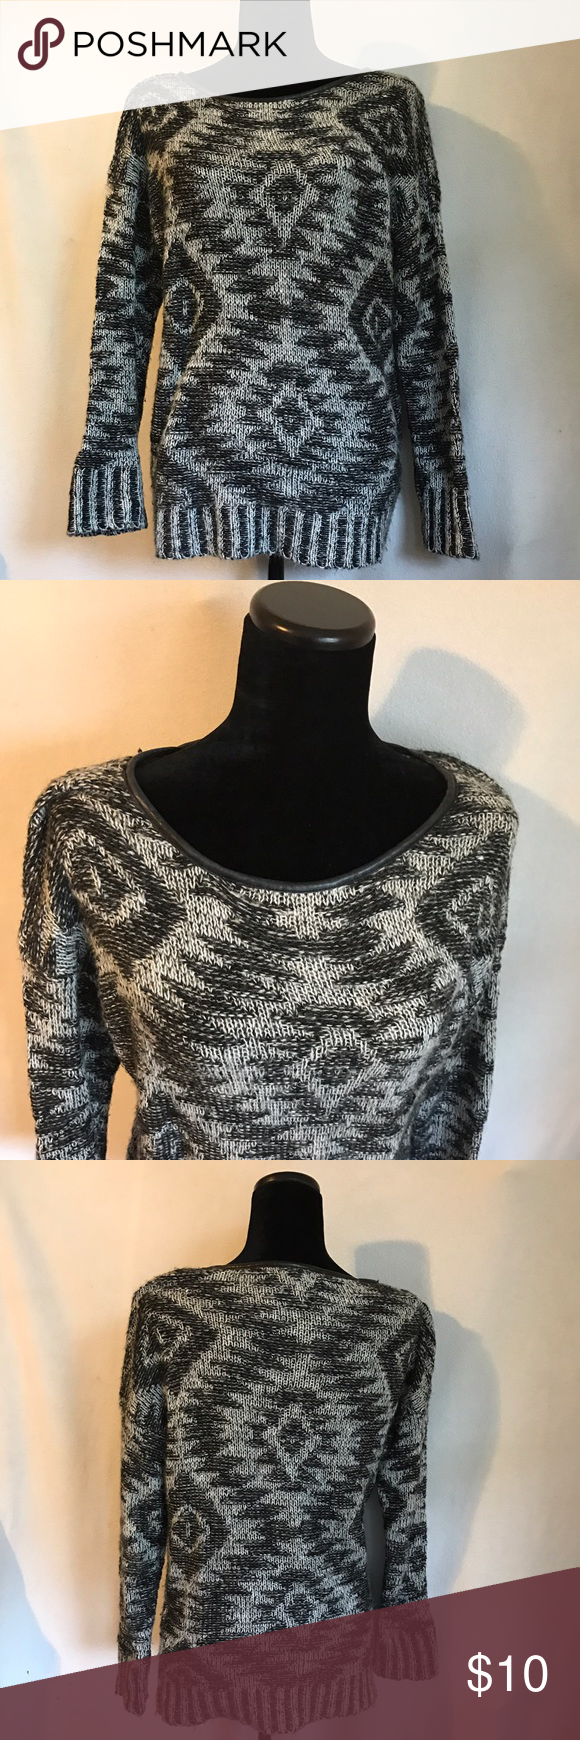 Xhilaration Sweater This sweater is in great condition, no damage or holes! It has an awesome faux leather neckline and is very comfortable! Xhilaration Sweaters